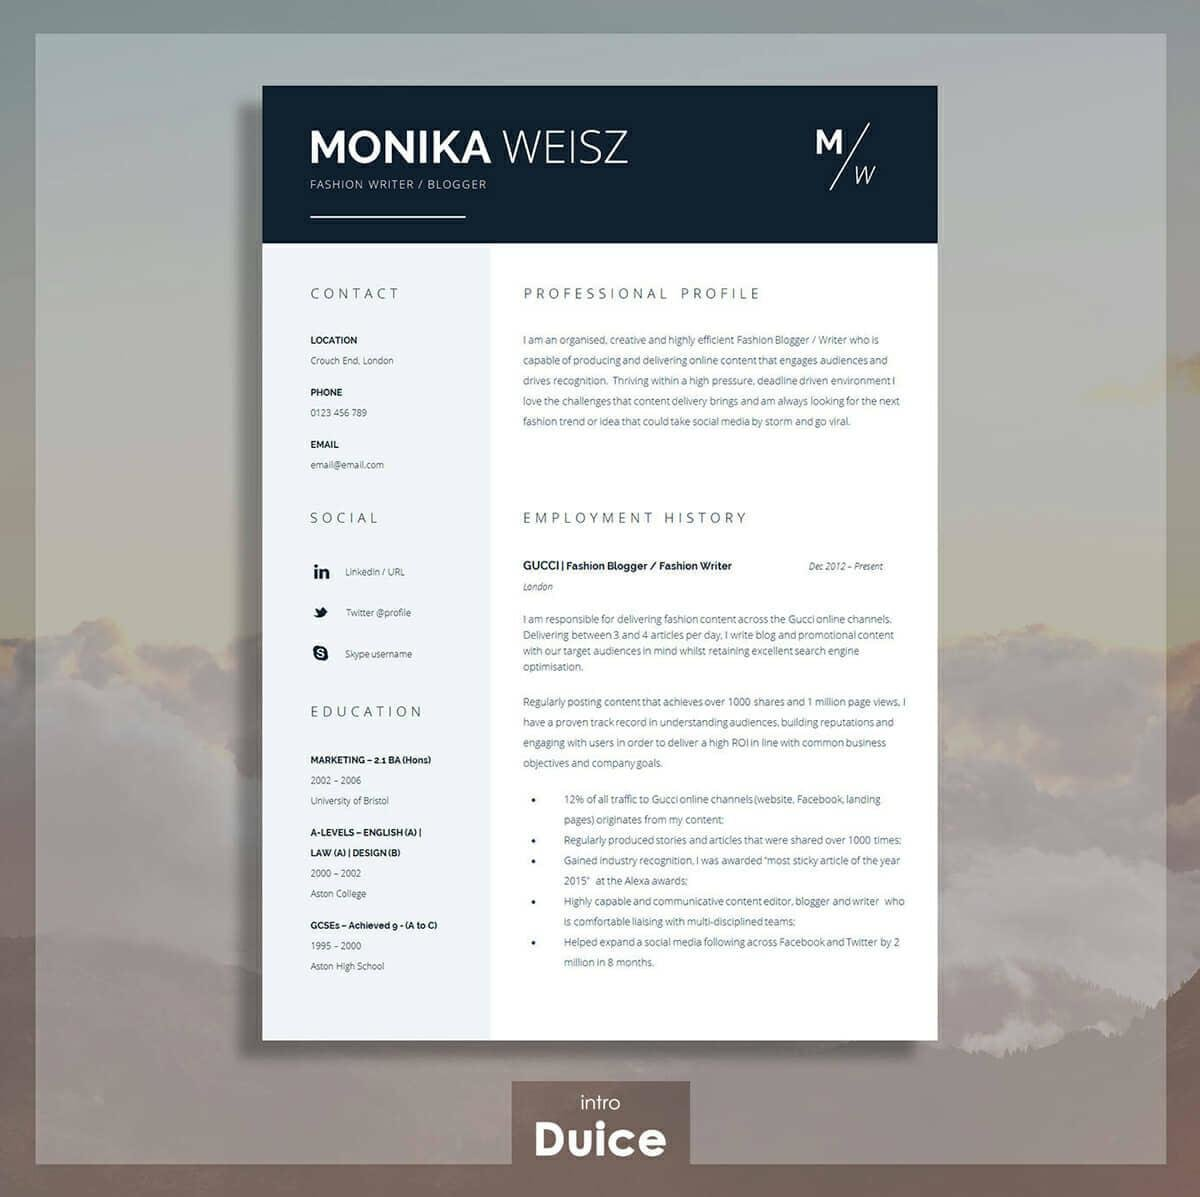 best resume templates for top picks to new the professional writers snf nurse pmo job Resume Best New Resume Templates